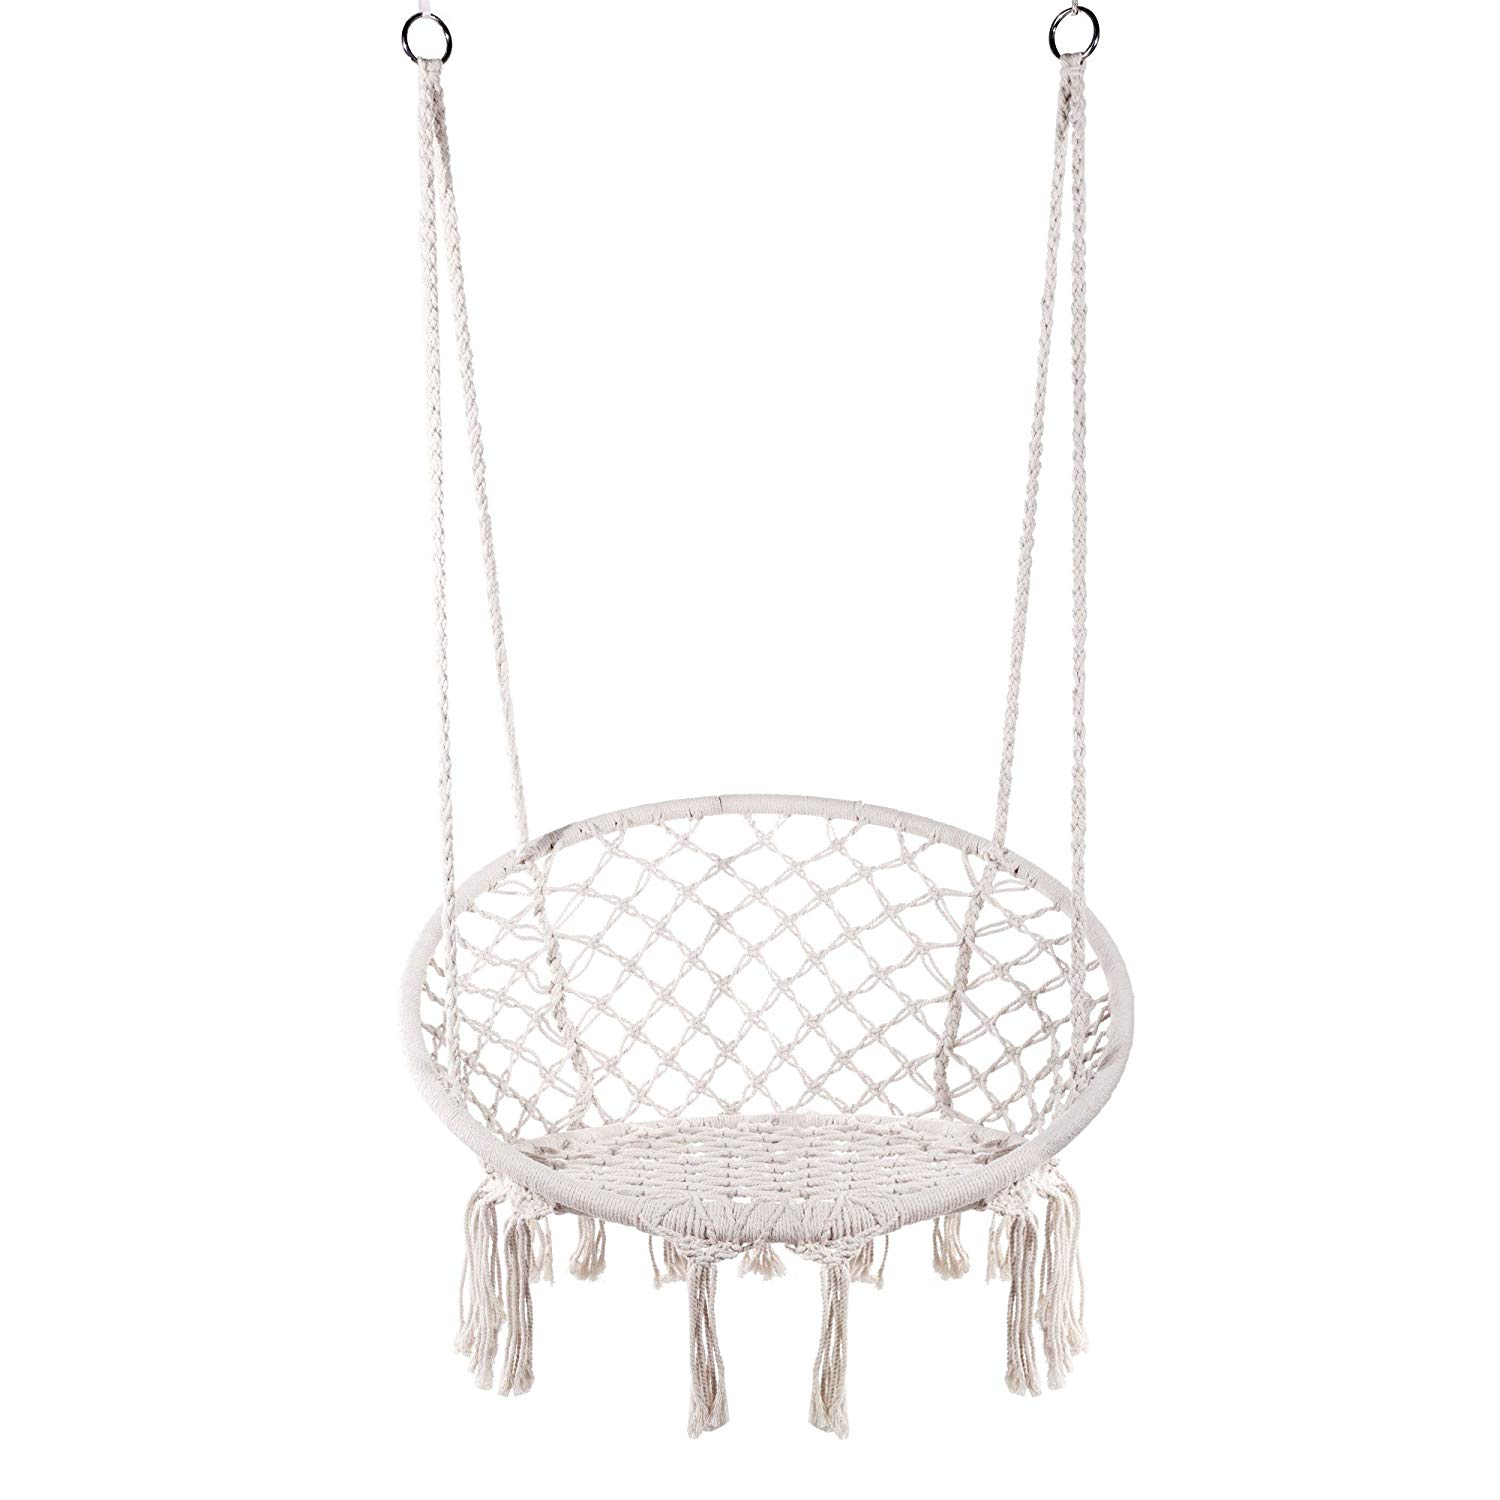 Hanging Swing Garden Swing Chair